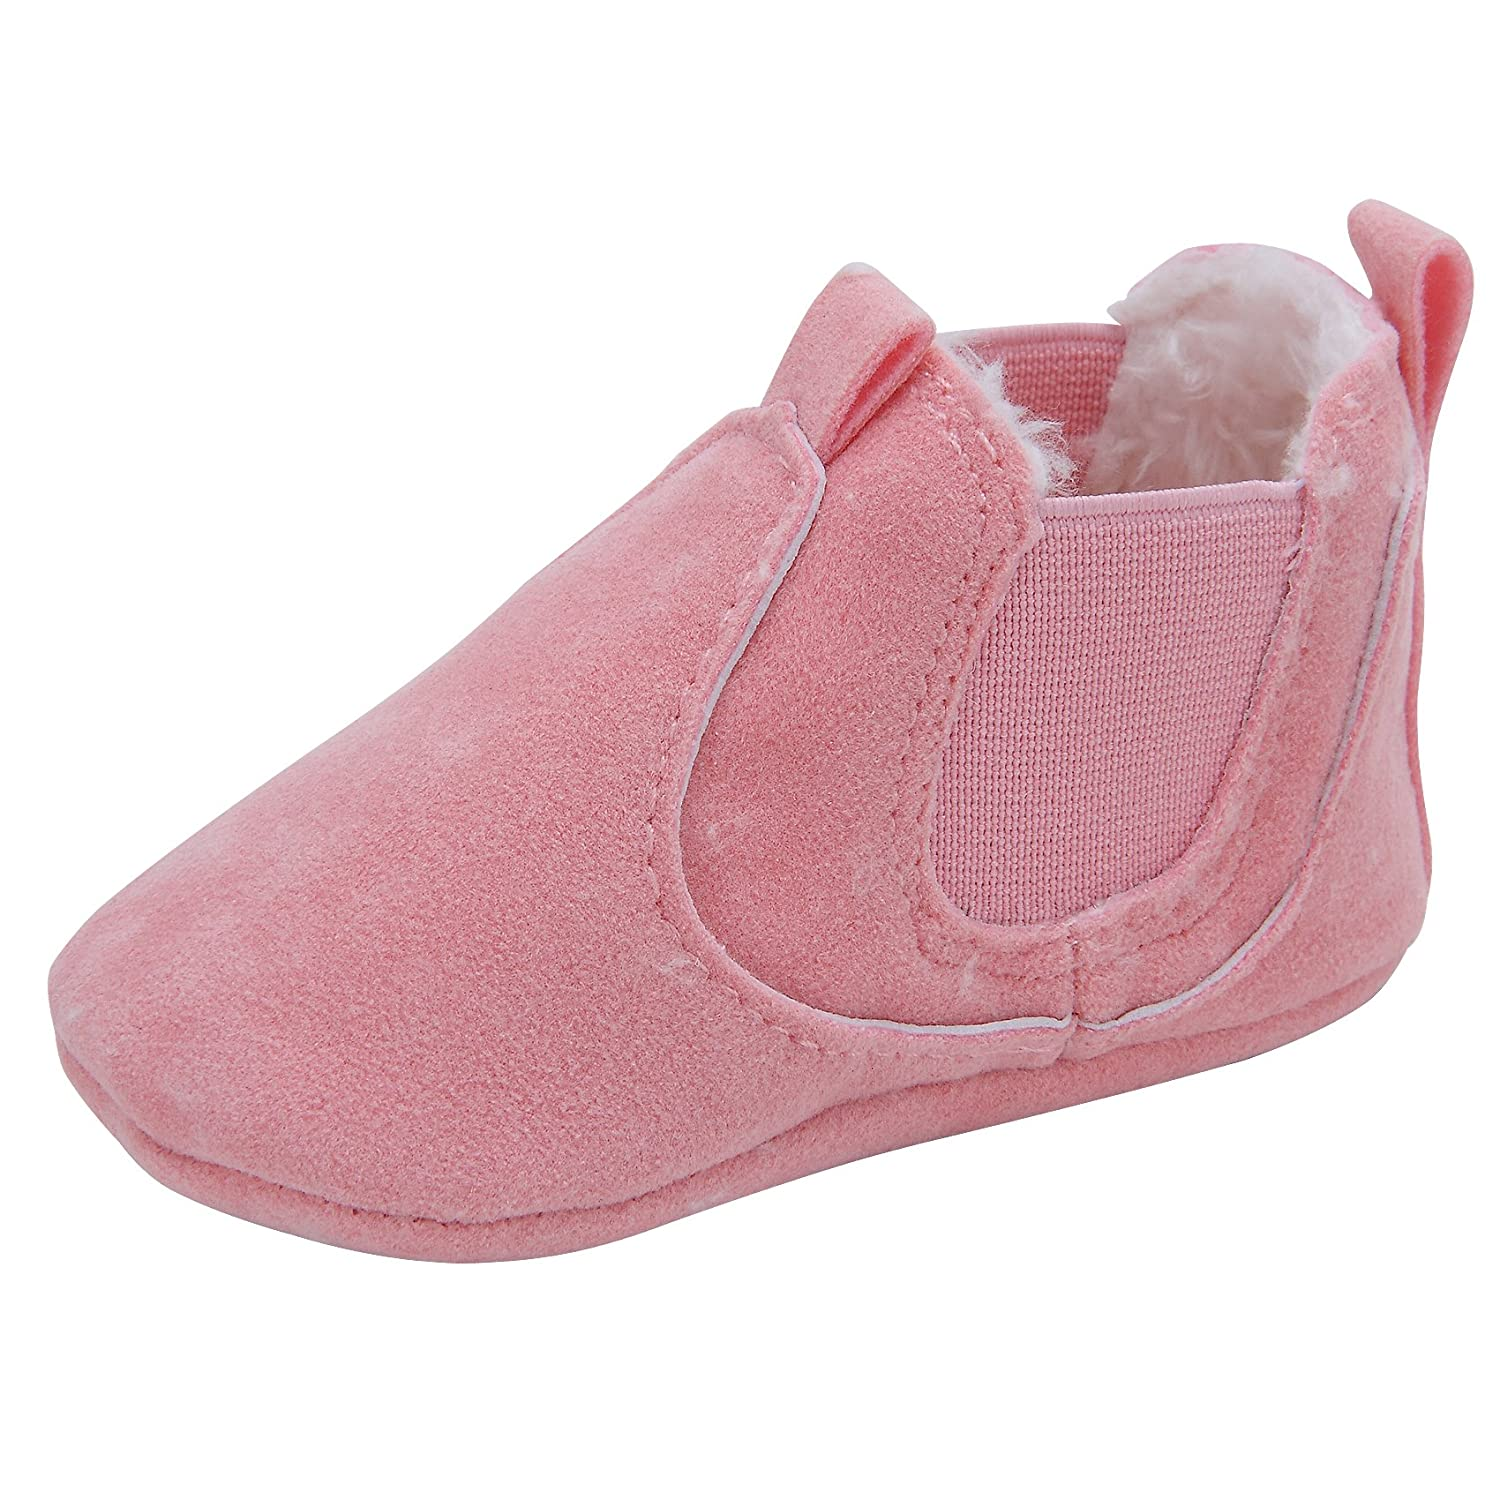 Kuner Baby Boys Girls Plush Soft Soled Winter Warm Boots Moccasins First Walkers Shoes